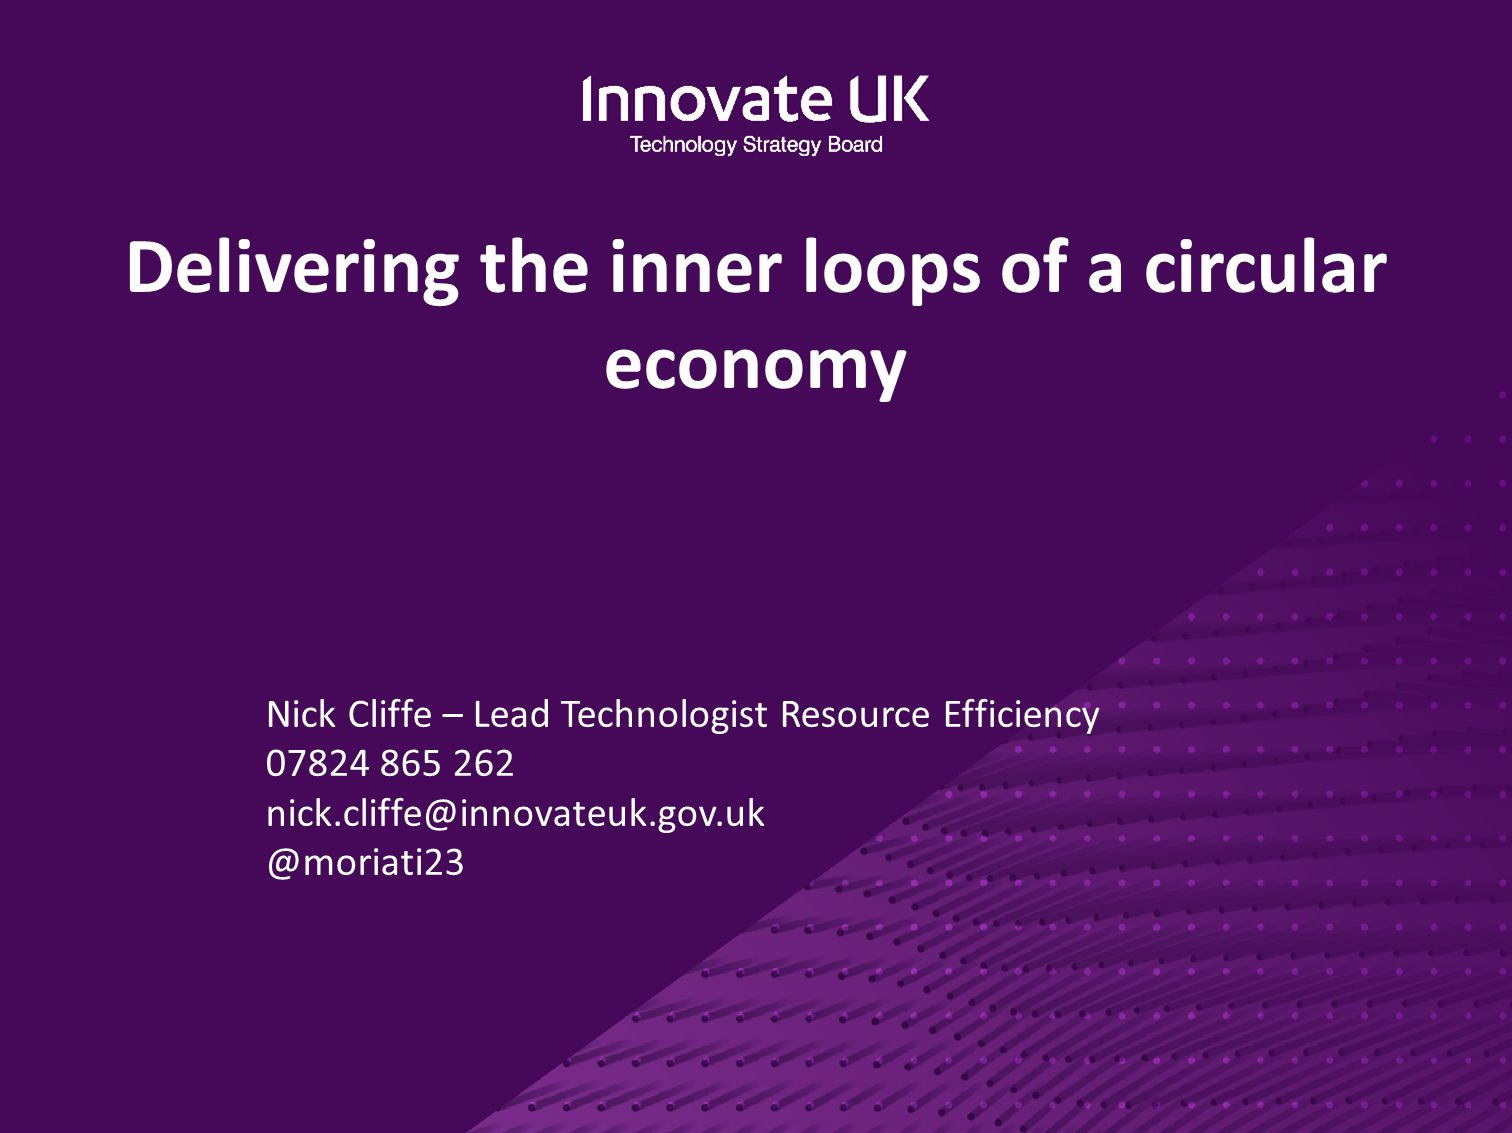 Delivering the inner loops of a circular economy Nick Cliffe – Lead Technologist Resource Efficiency 07824 865 262 nick.cliffe@innovateuk.gov.uk @mori